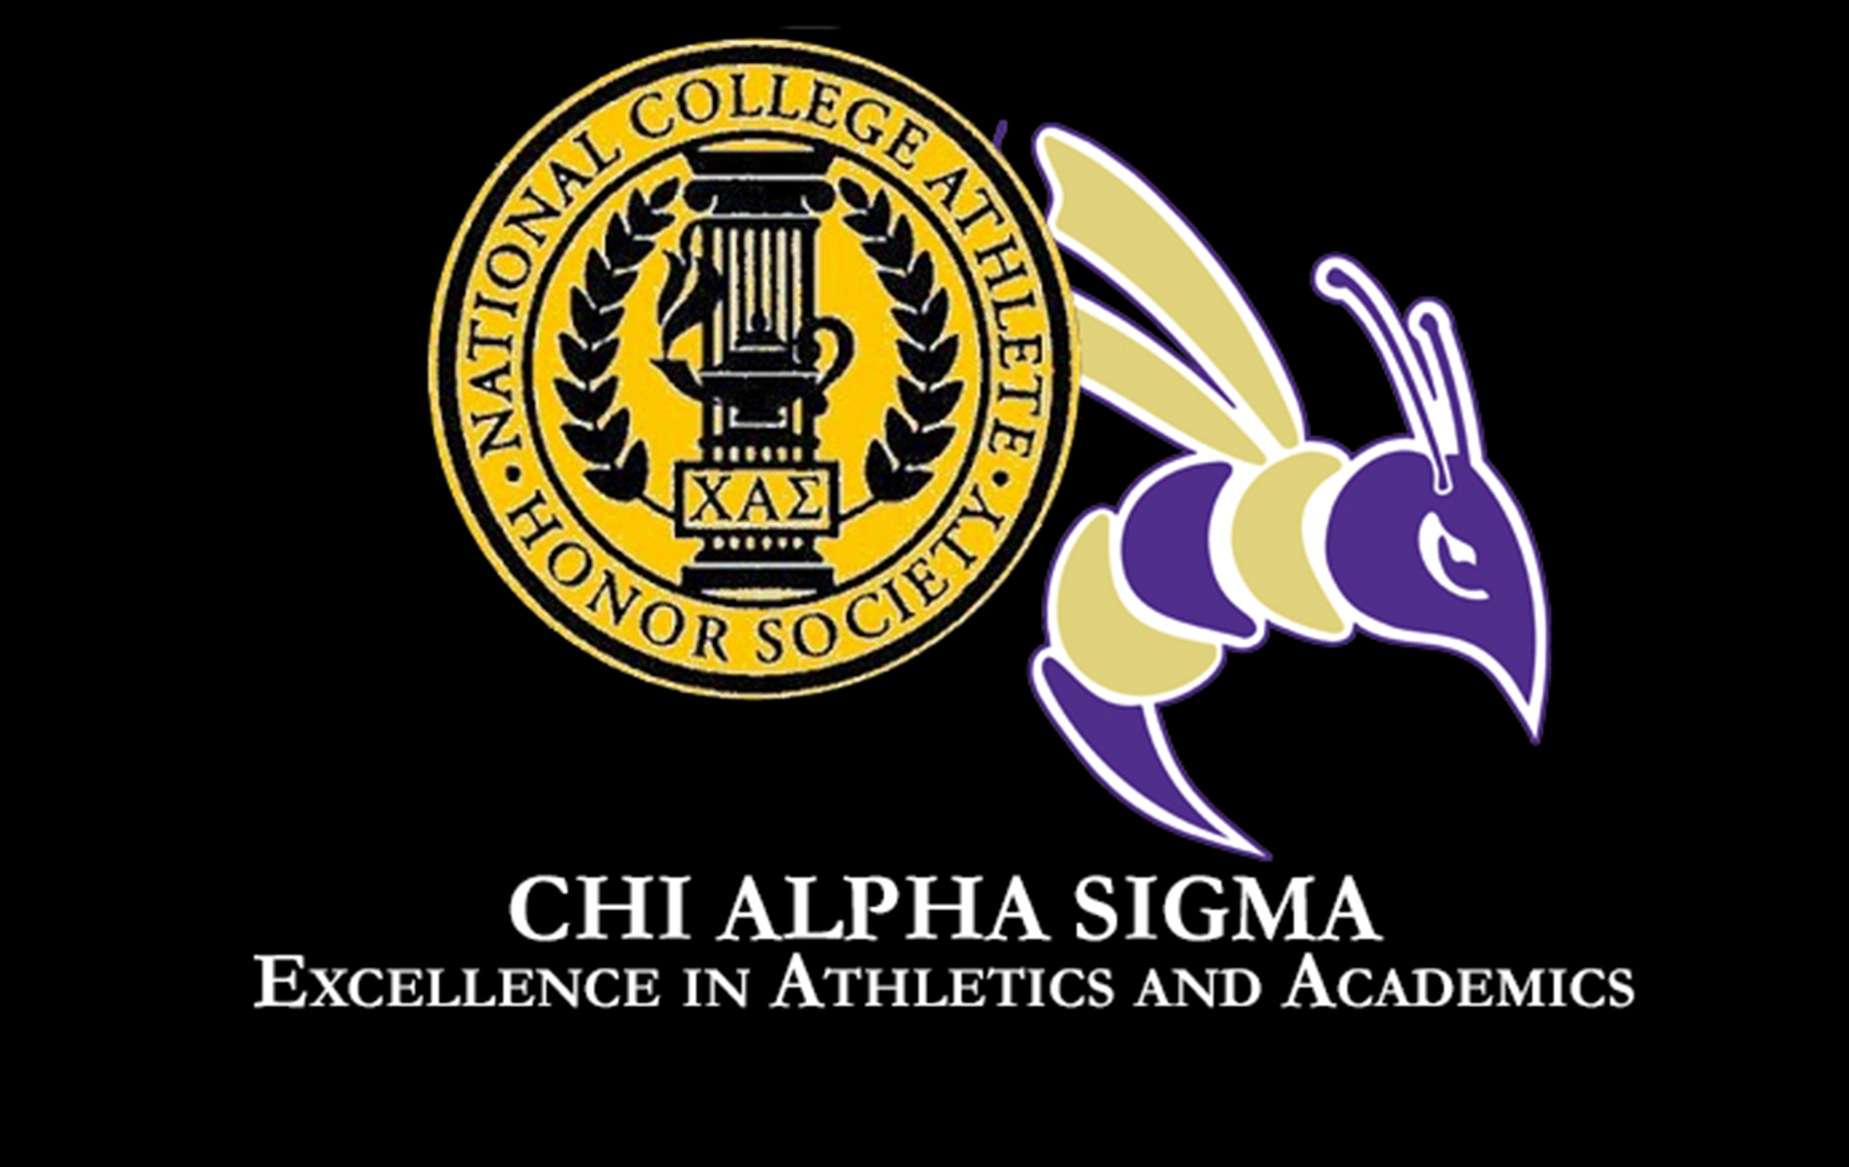 Defiance Has 61 Student-Athletes Selected Chi Alpha Sigma